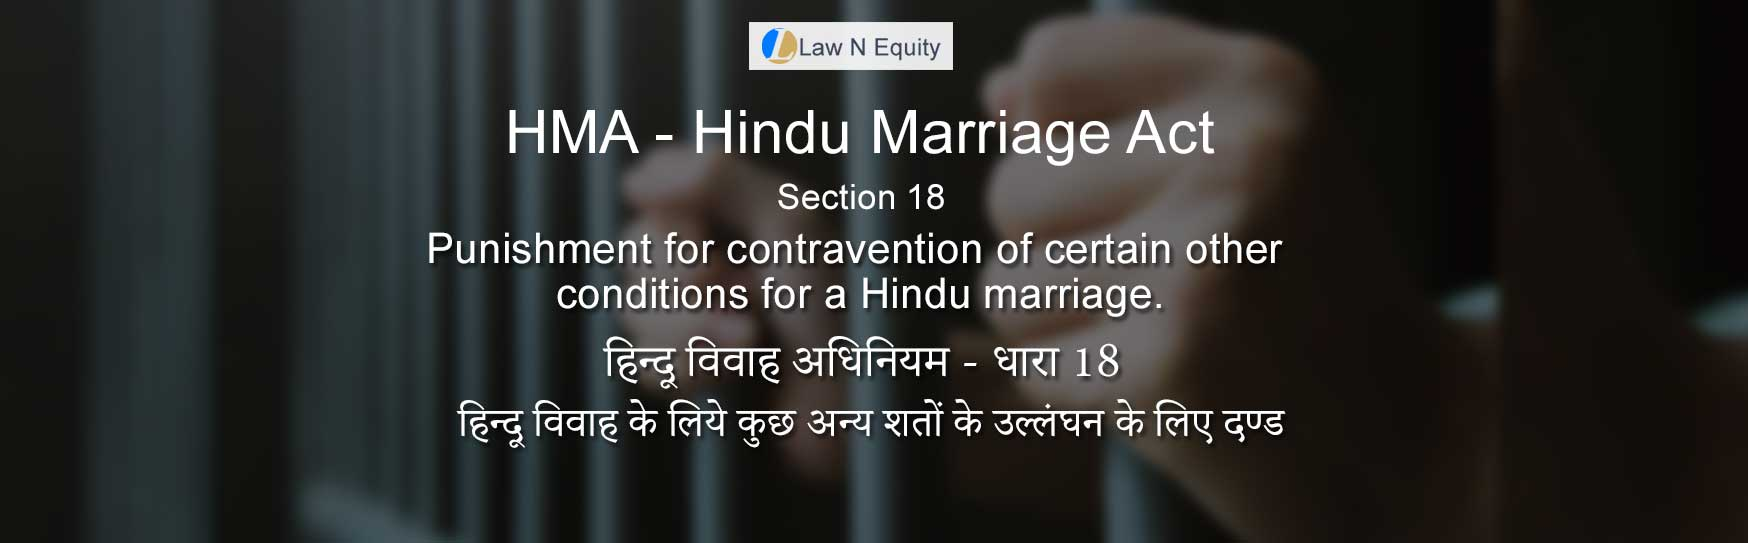 Hindu Marriage Act(HMA) Section 18